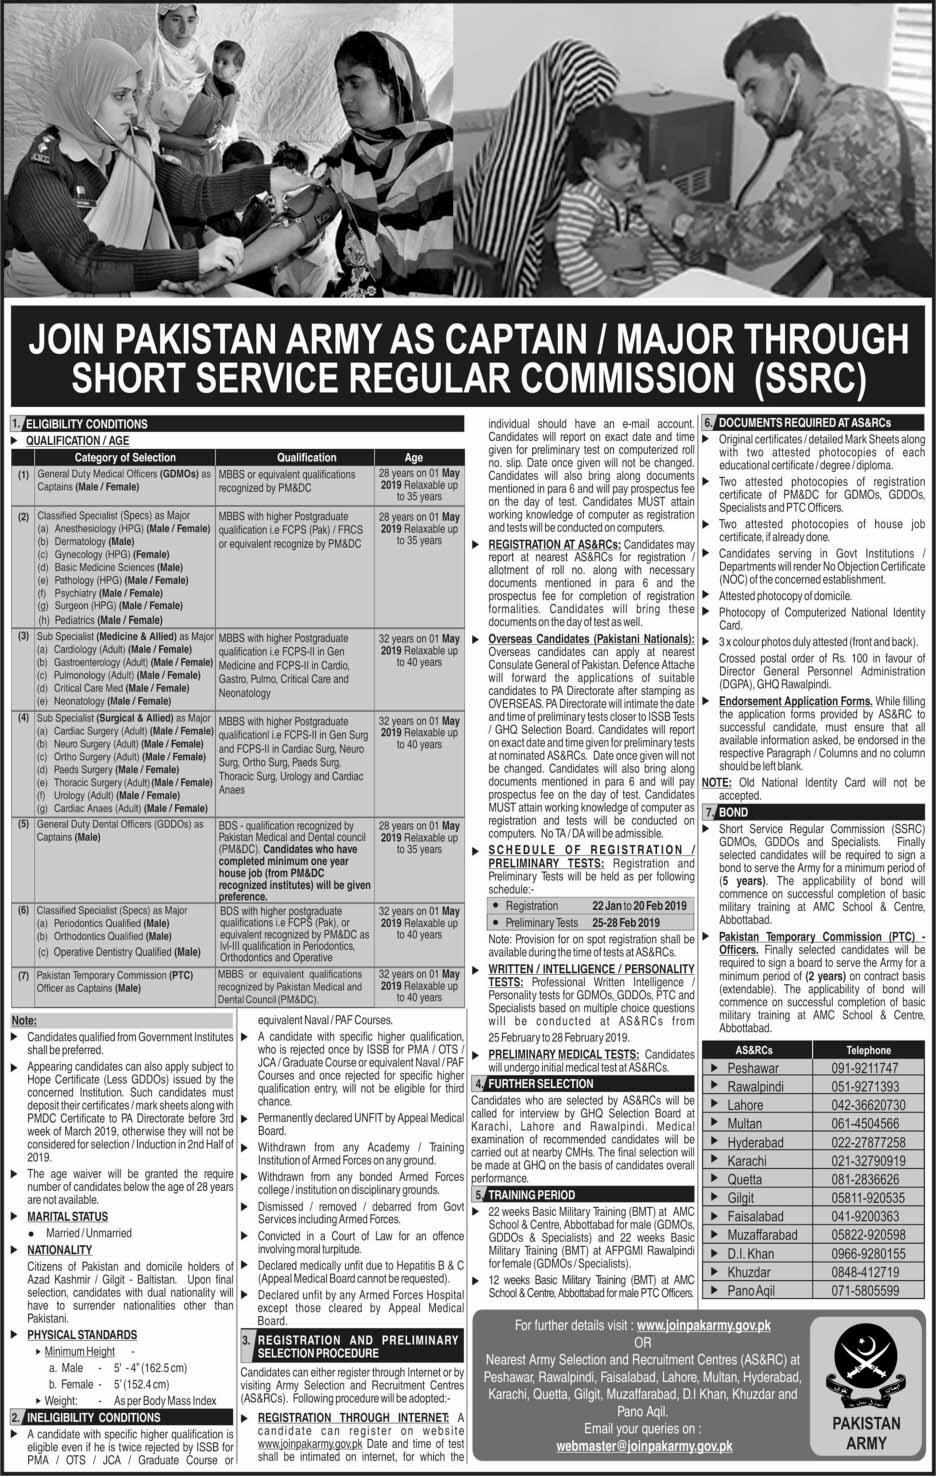 Join Pak Army 2019, Join Pak Army as Major and Captain | Joinpakarmy.gov.pk